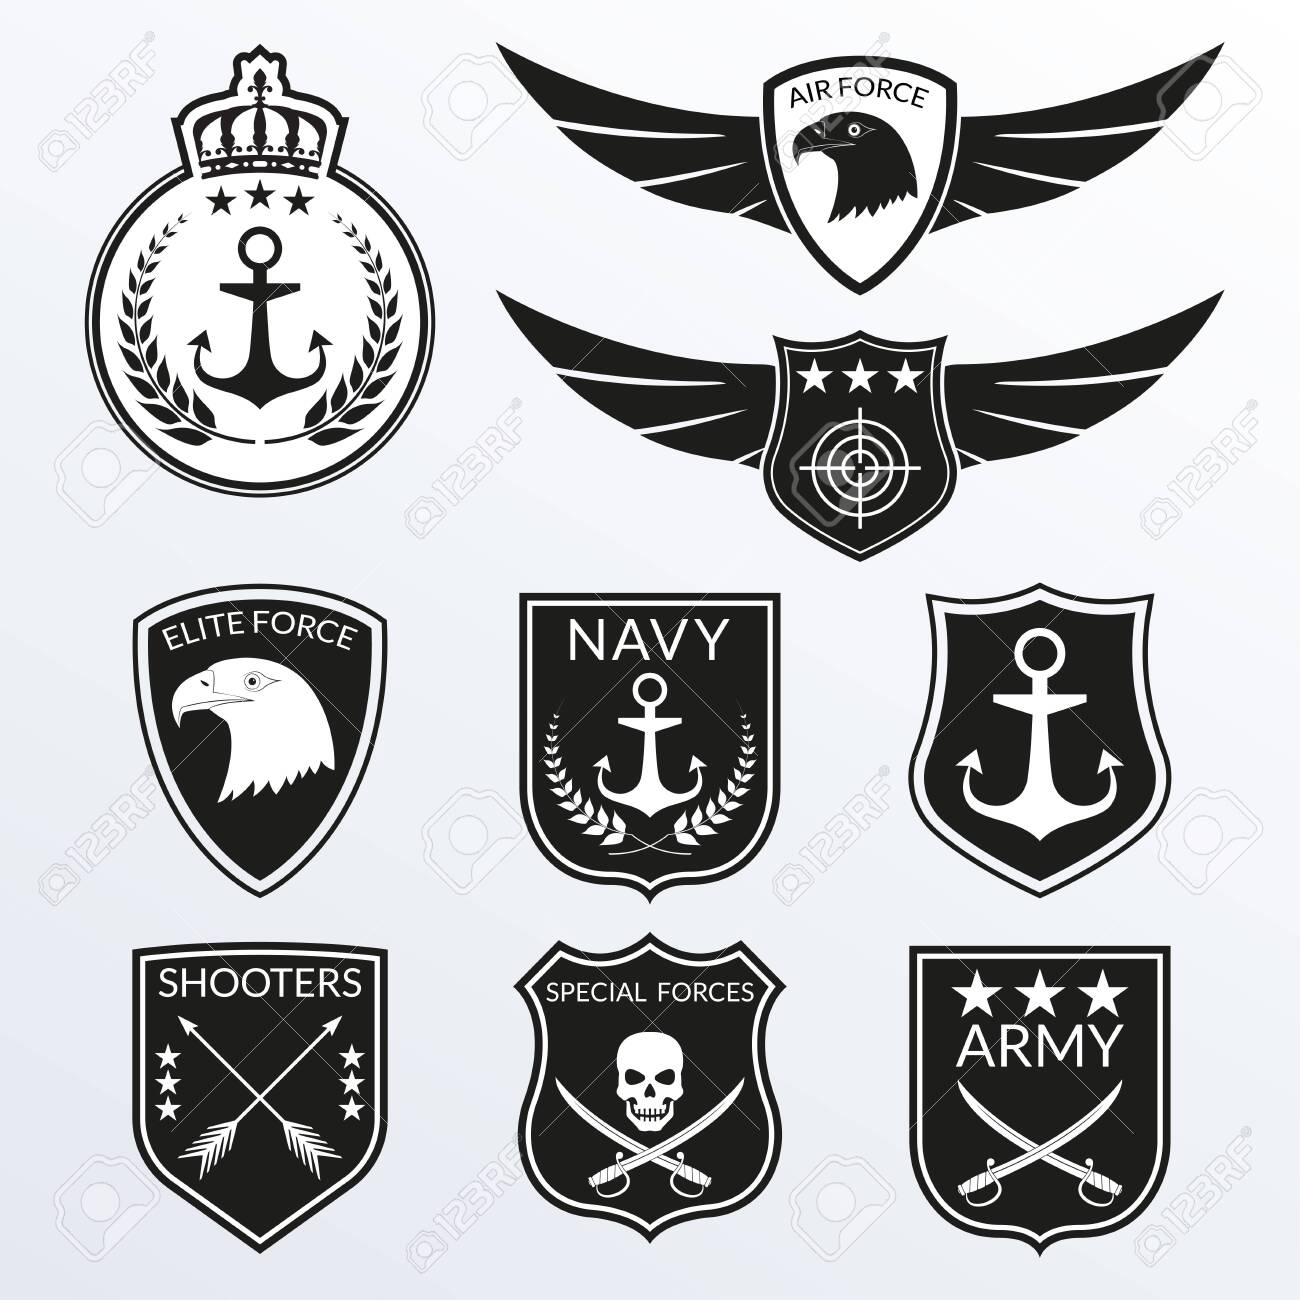 Army and Military badge and logo set. Air Force emblem with Wings and Eagle head. Navy labels with anchor. Military patches with skull. Vector illustration. - 151541204